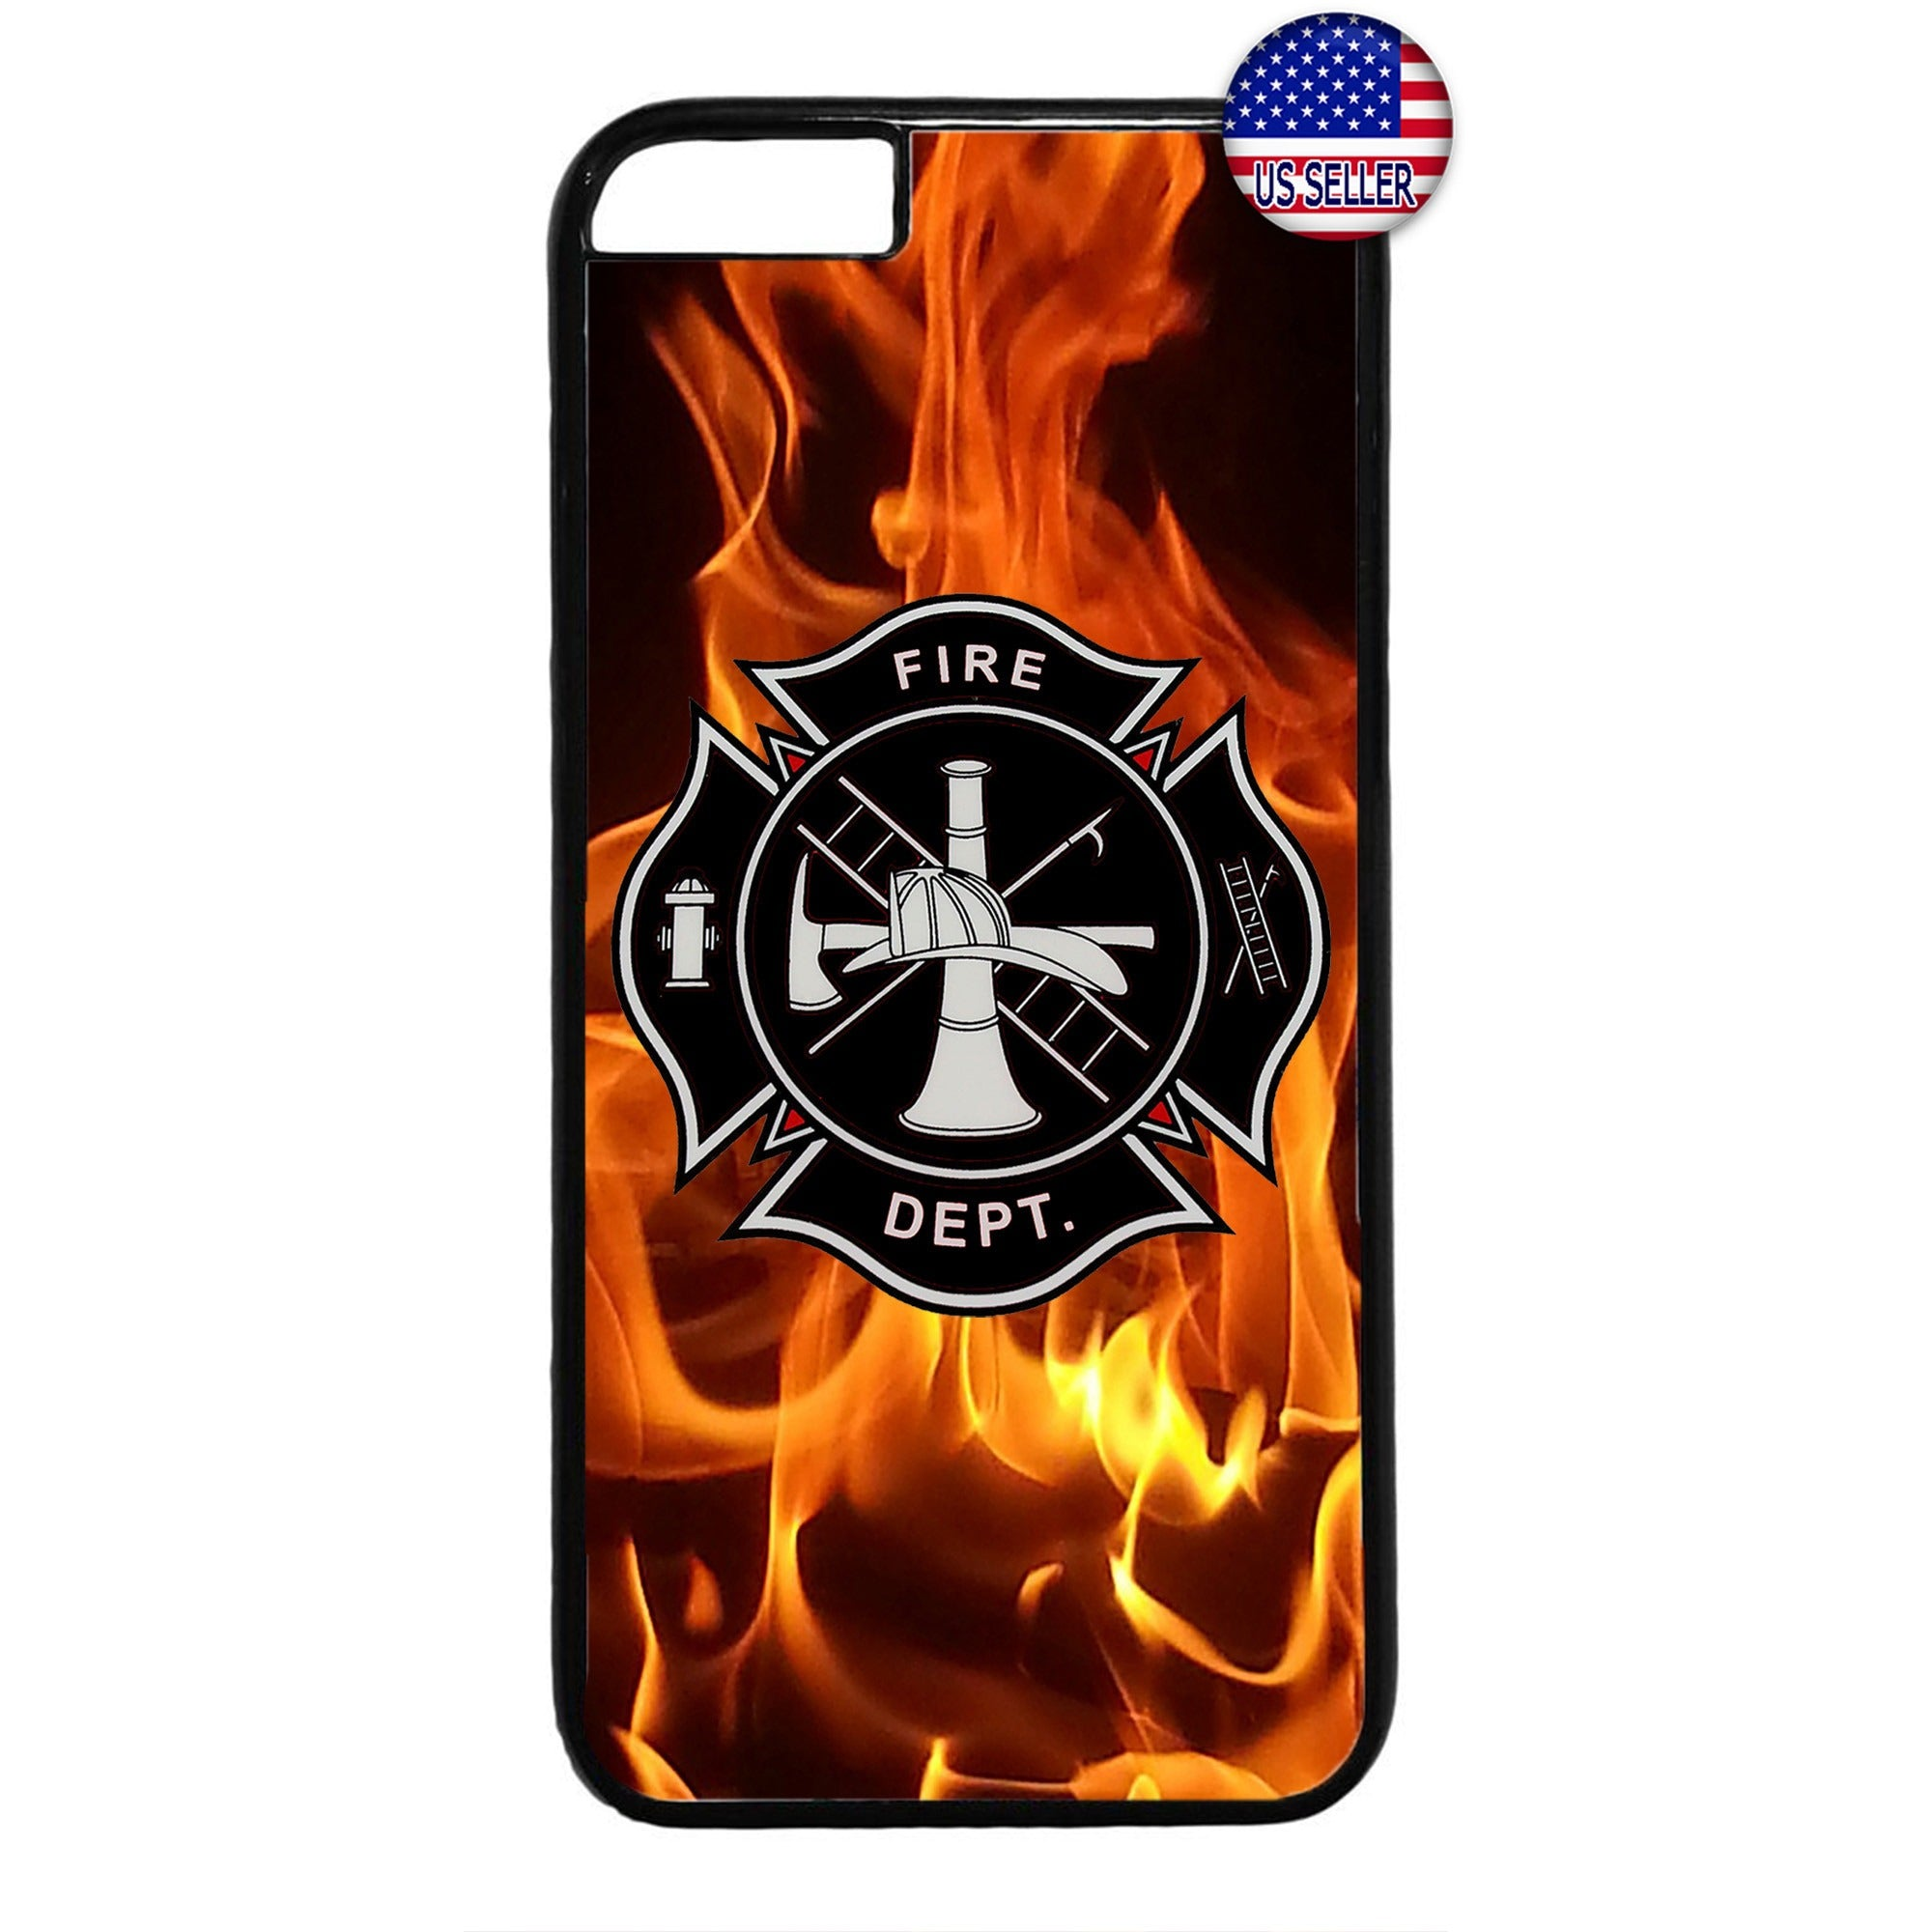 Firefighter Fire Dept. Flames Rubber Case Cover For Iphone